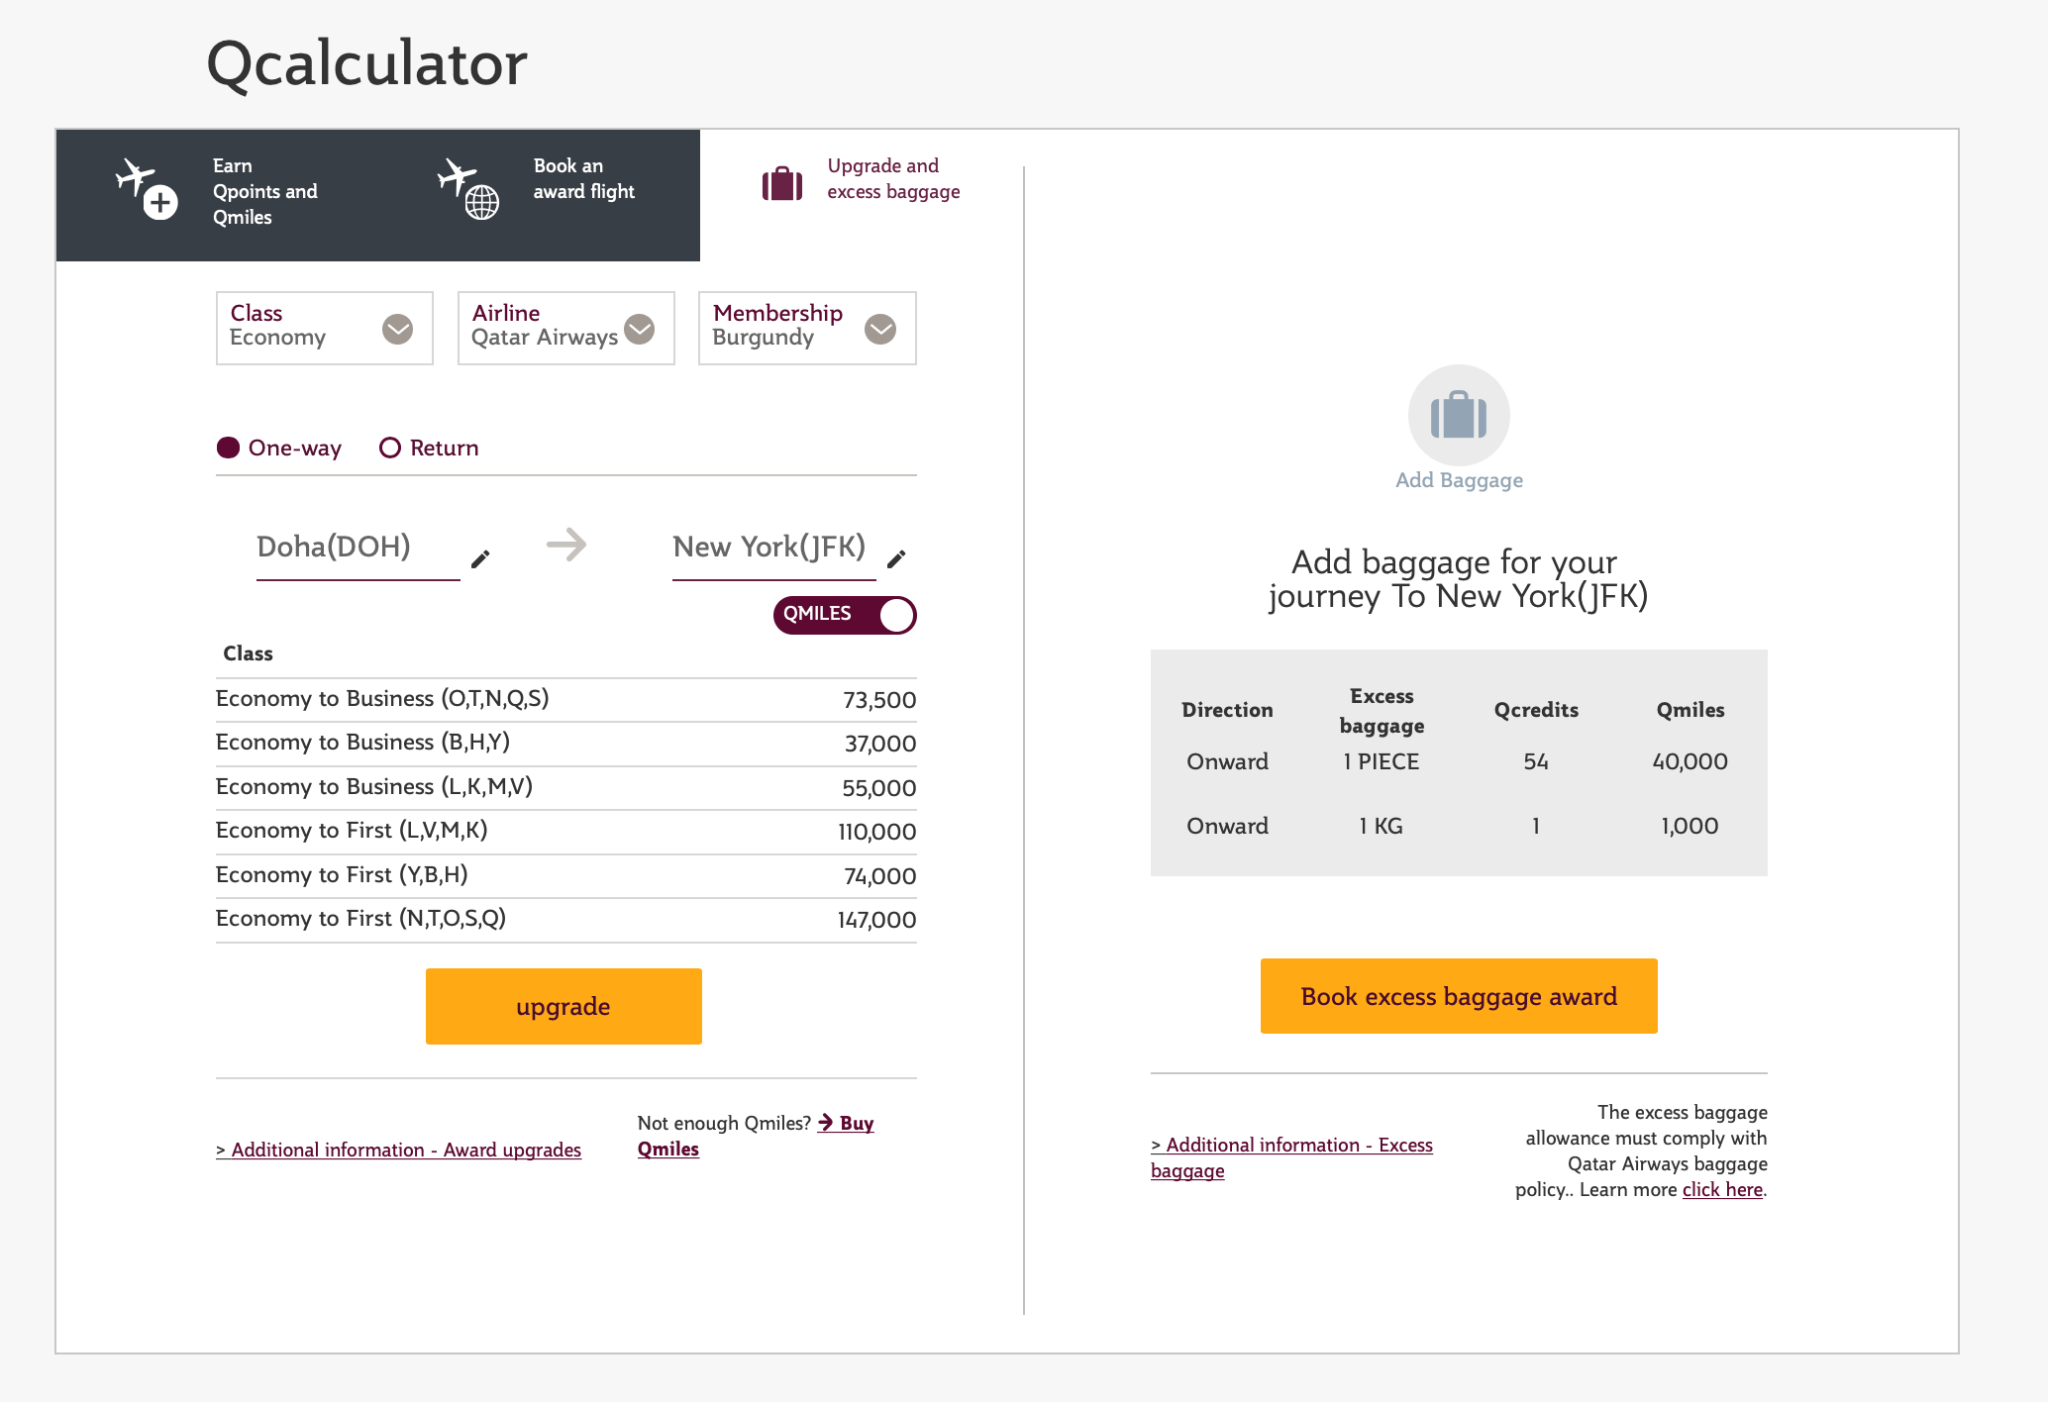 Pricing DOH to JFK Upgrades From Economy